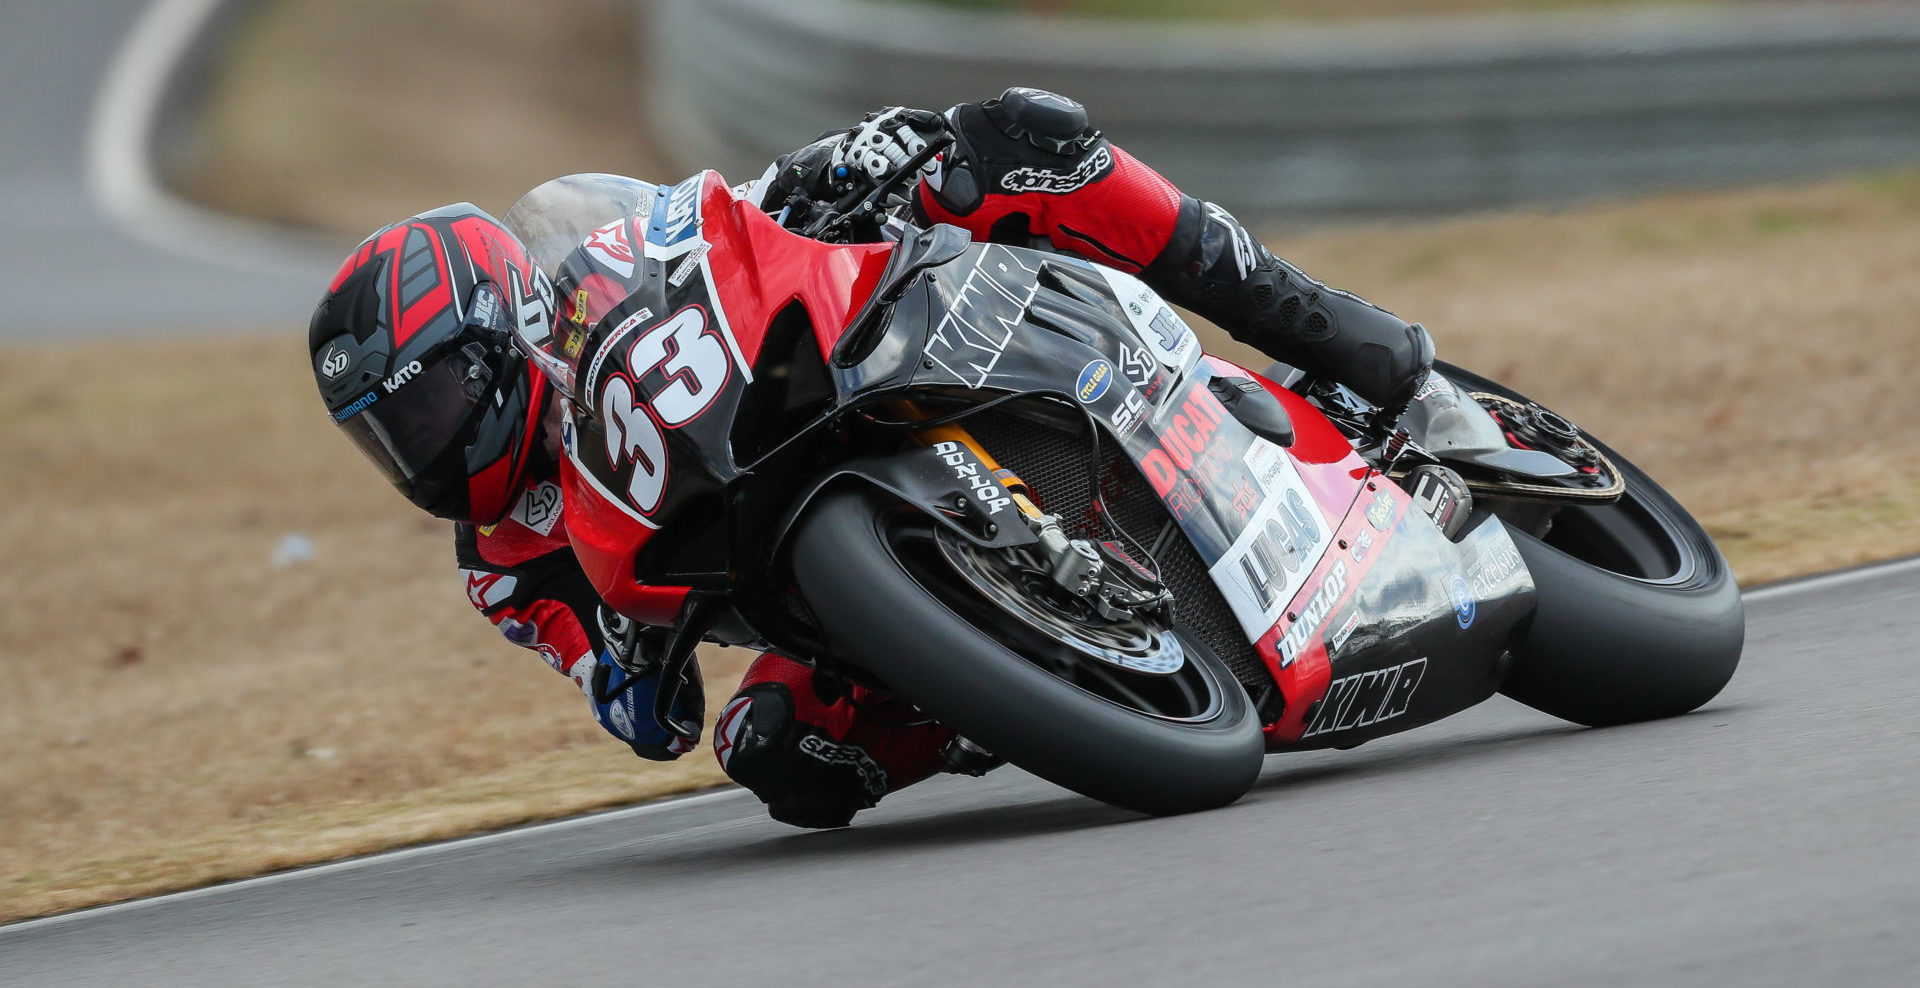 Kyle Wyman (33) on his KWR Ducati Panigale V4 R Superbike during the MotoAmerica pre-season test at Barber Motorsports Park. Photo by Brian J. Nelson, courtesy of KWR.